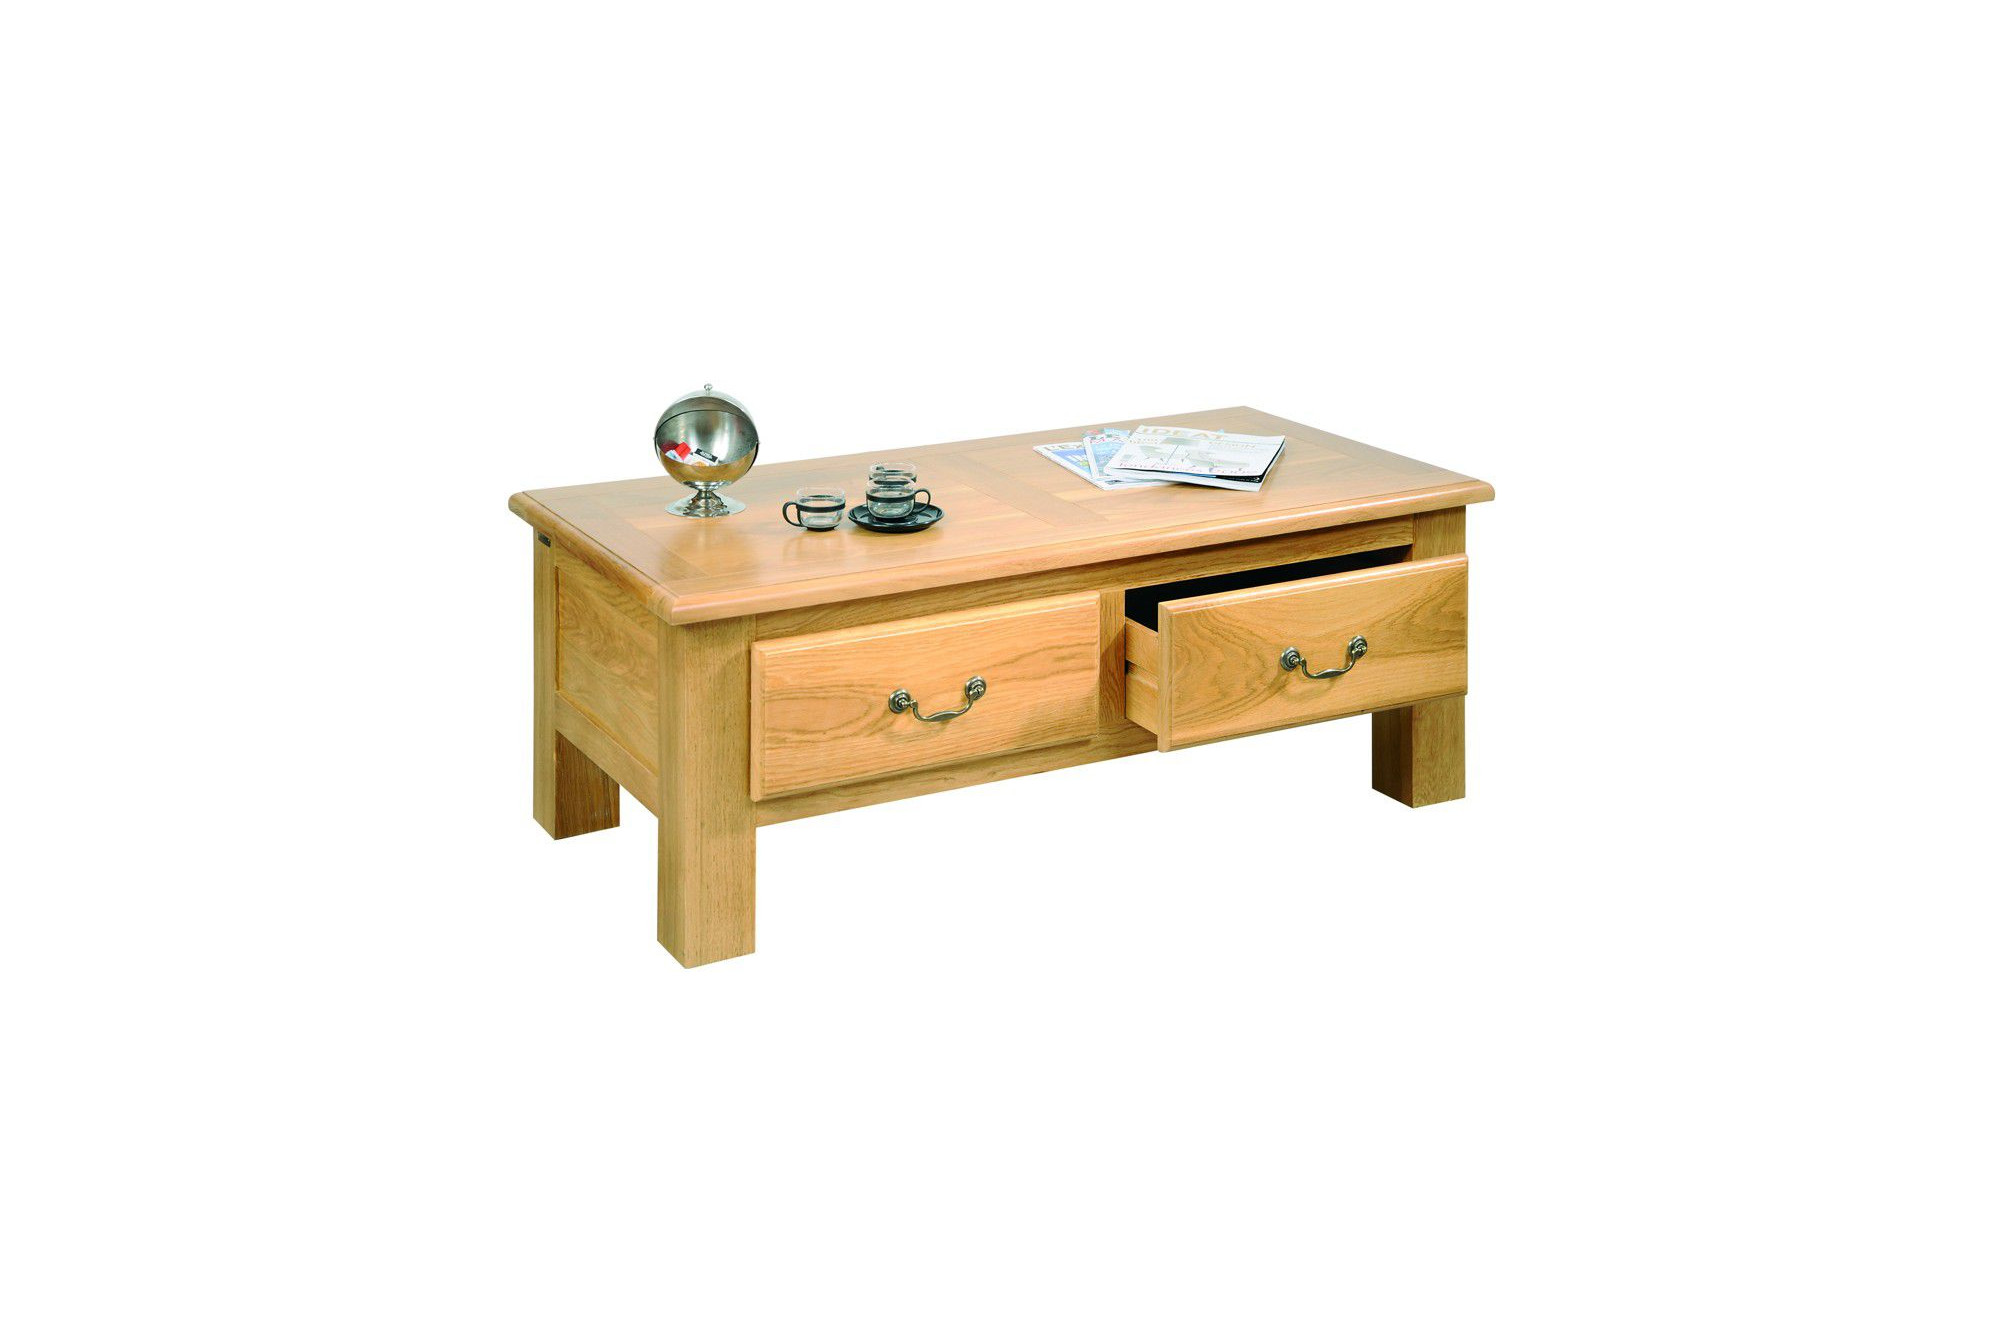 Table Basse Chene Table Basse Chene Massif Meuble D 39occasion Hellin